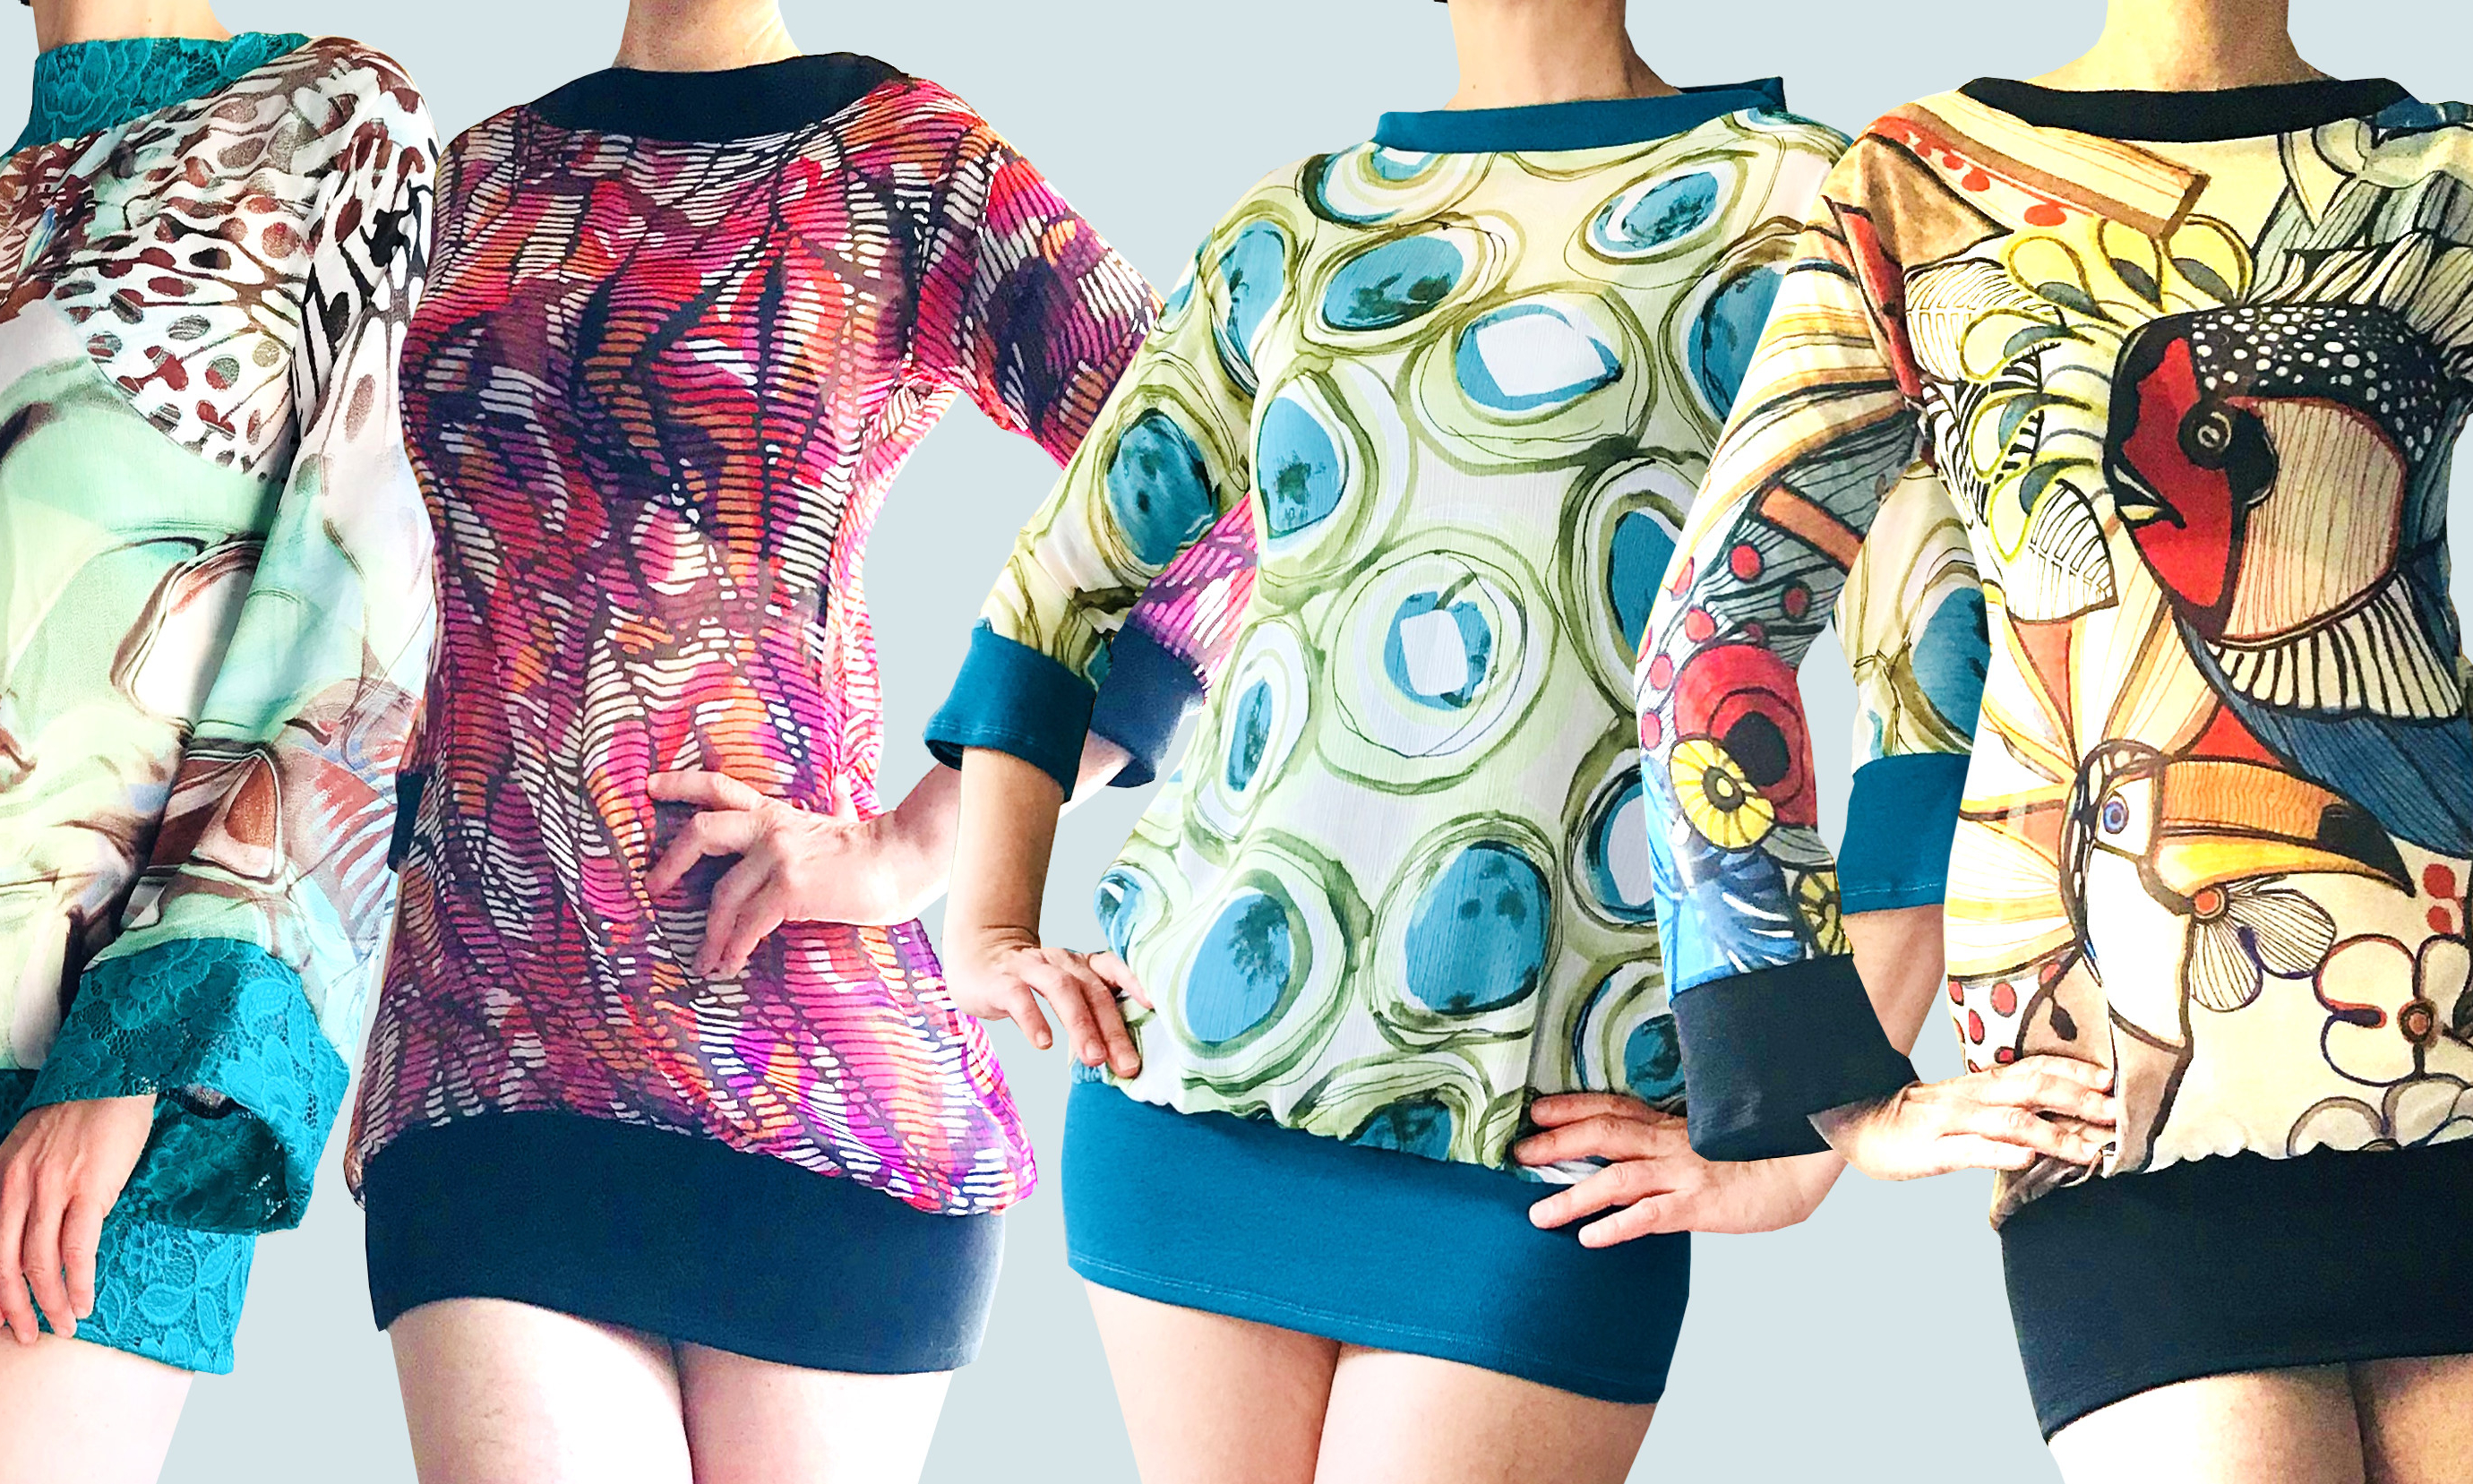 Dahrah, innovative, colorful and sustainable clothing brand based in The Netherlands.